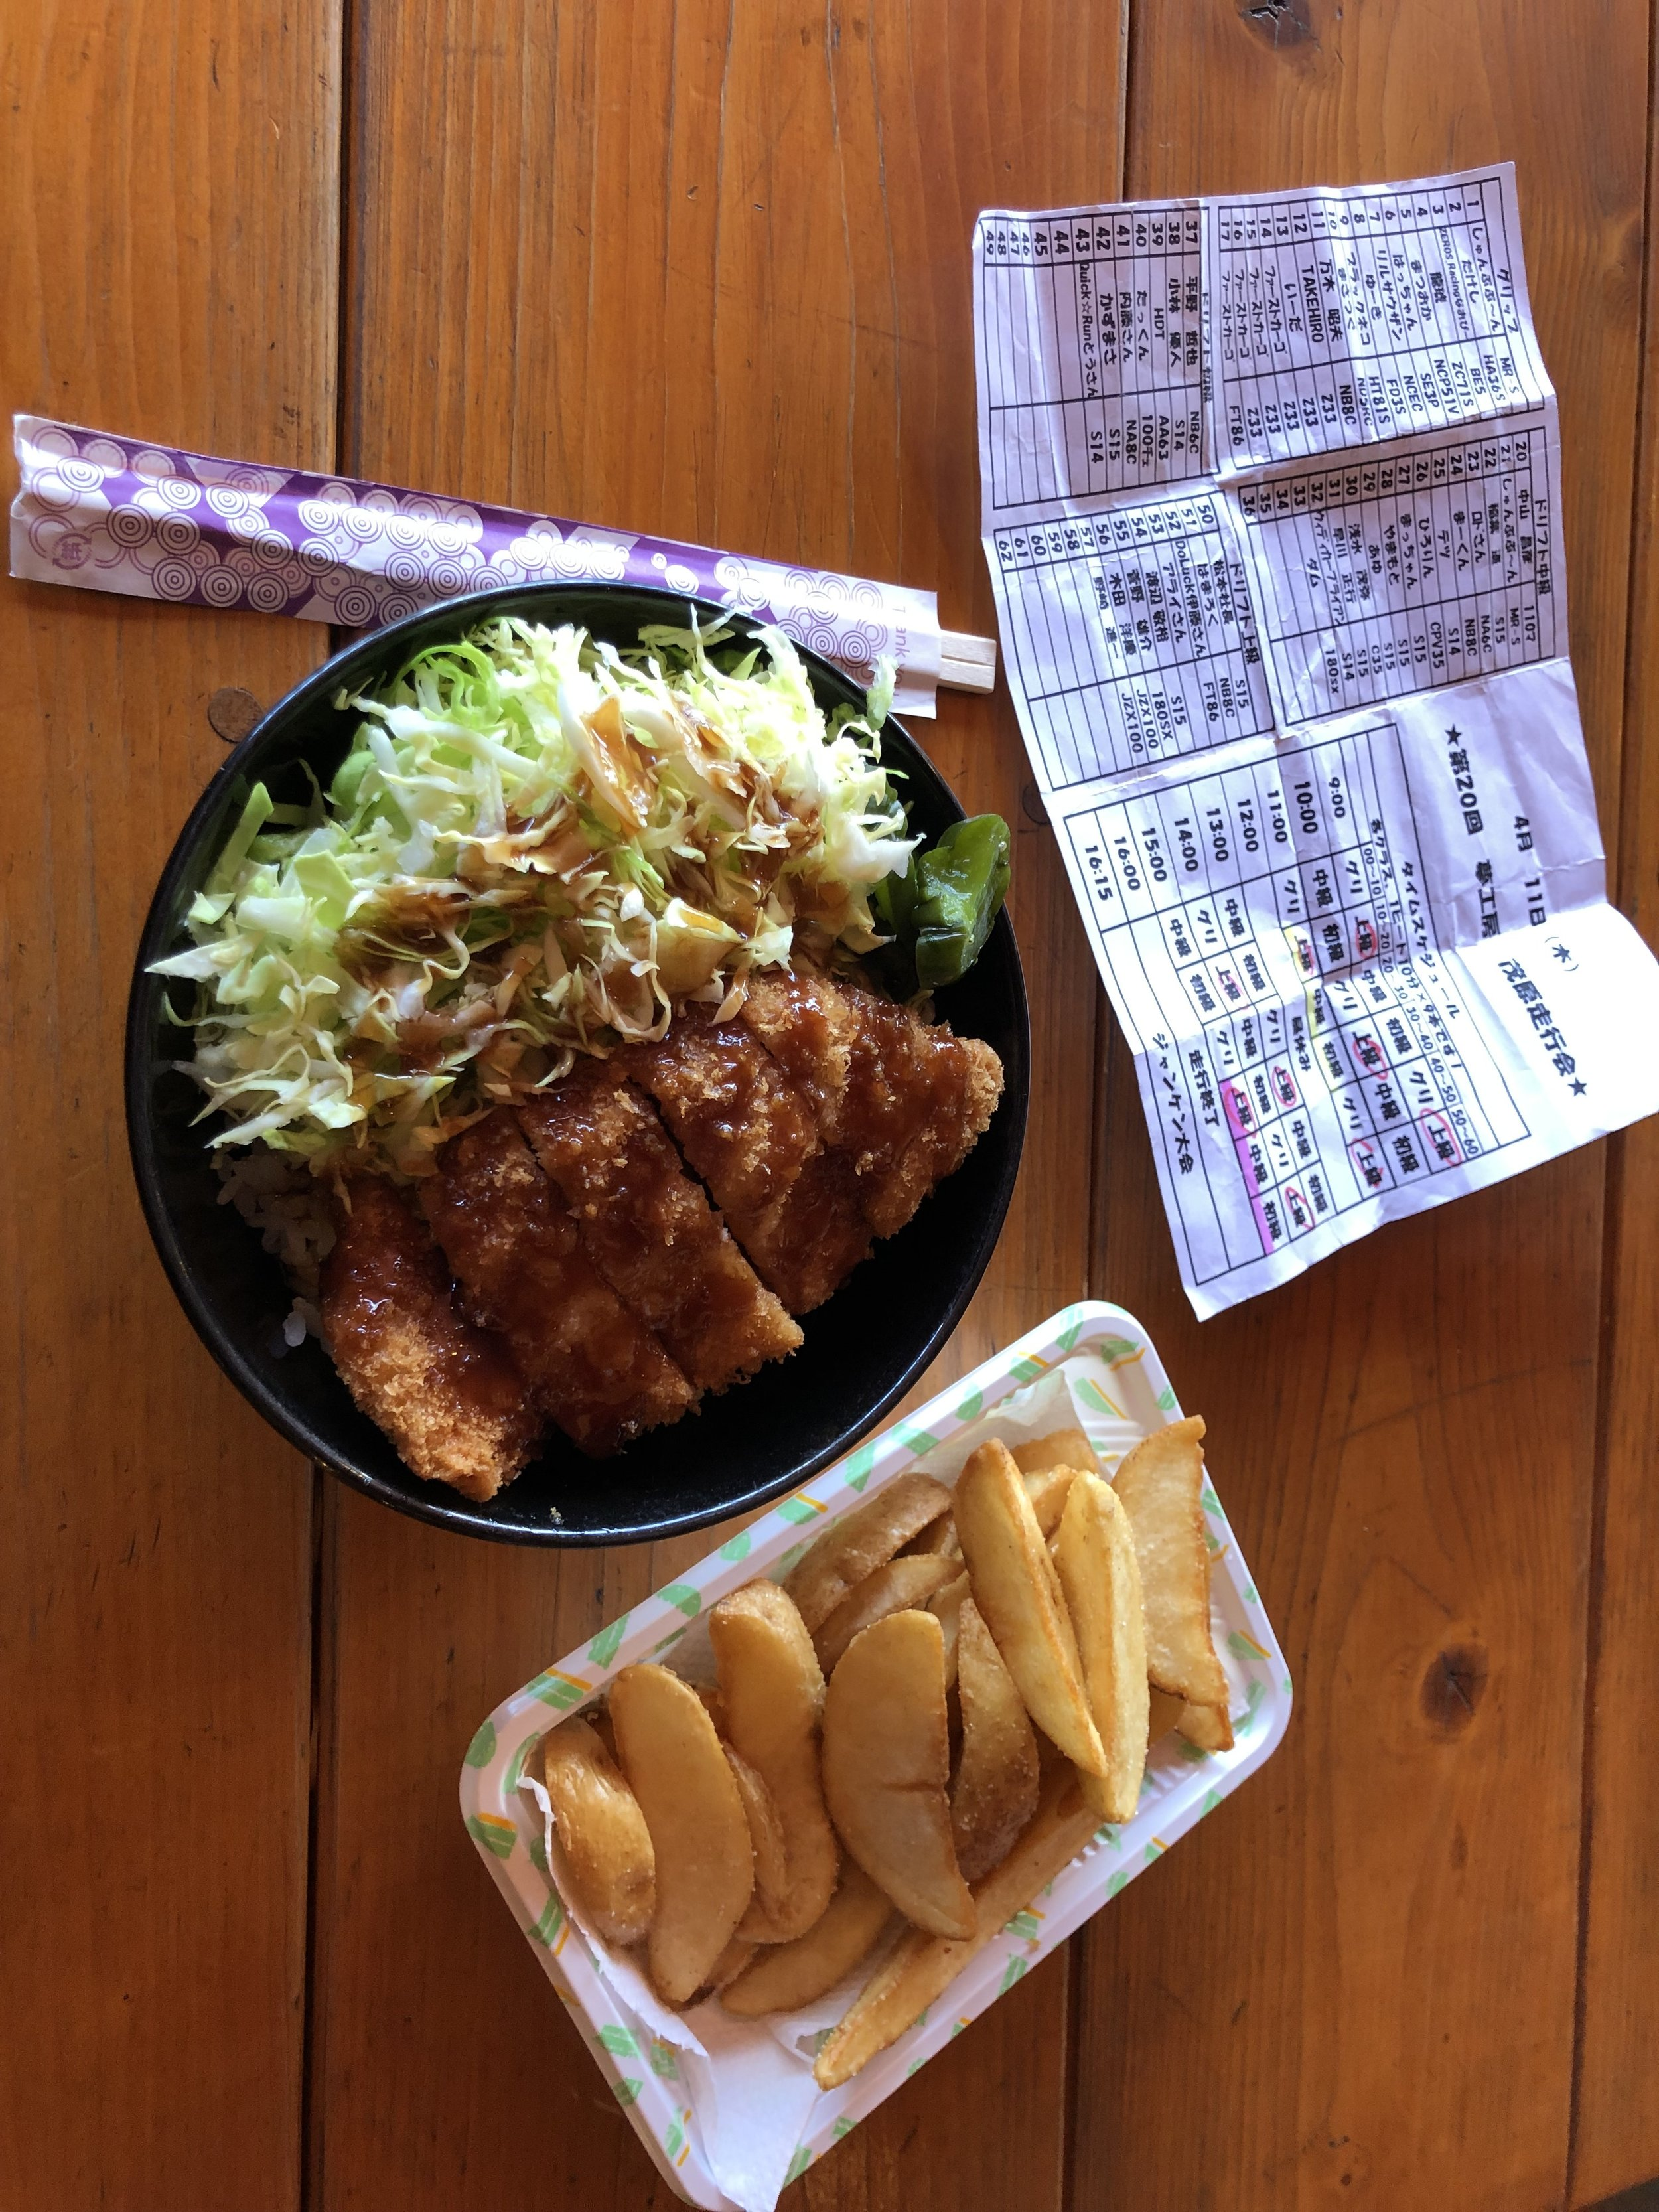 Back at the track, we grabbed a quick lunch with everyone! Mobara has a great restaurant right on site, and I could pass the opportunity to have some Tonkatsu (fried pork with cabbage and rice); so delicious!